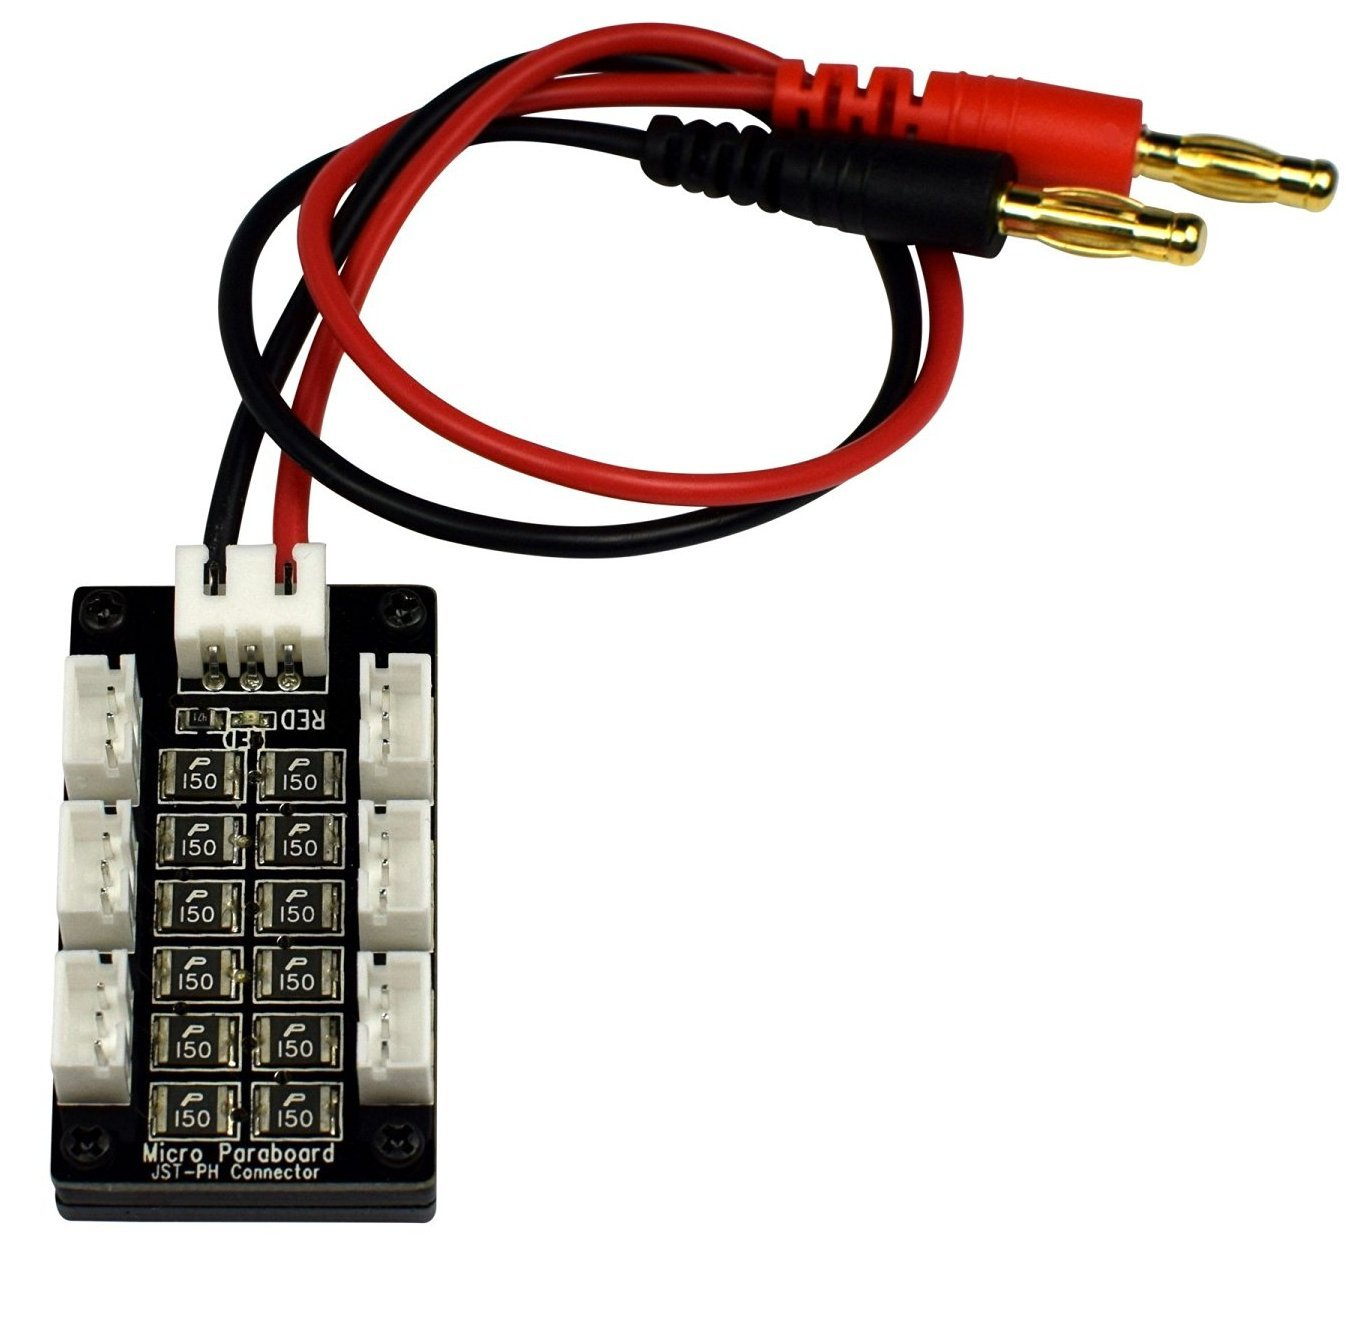 Apex RC Products 6 Battery Lipo Parallel Charging Board, Blade 130 X MCPX BL Parkzone & Eflite UMX 1461